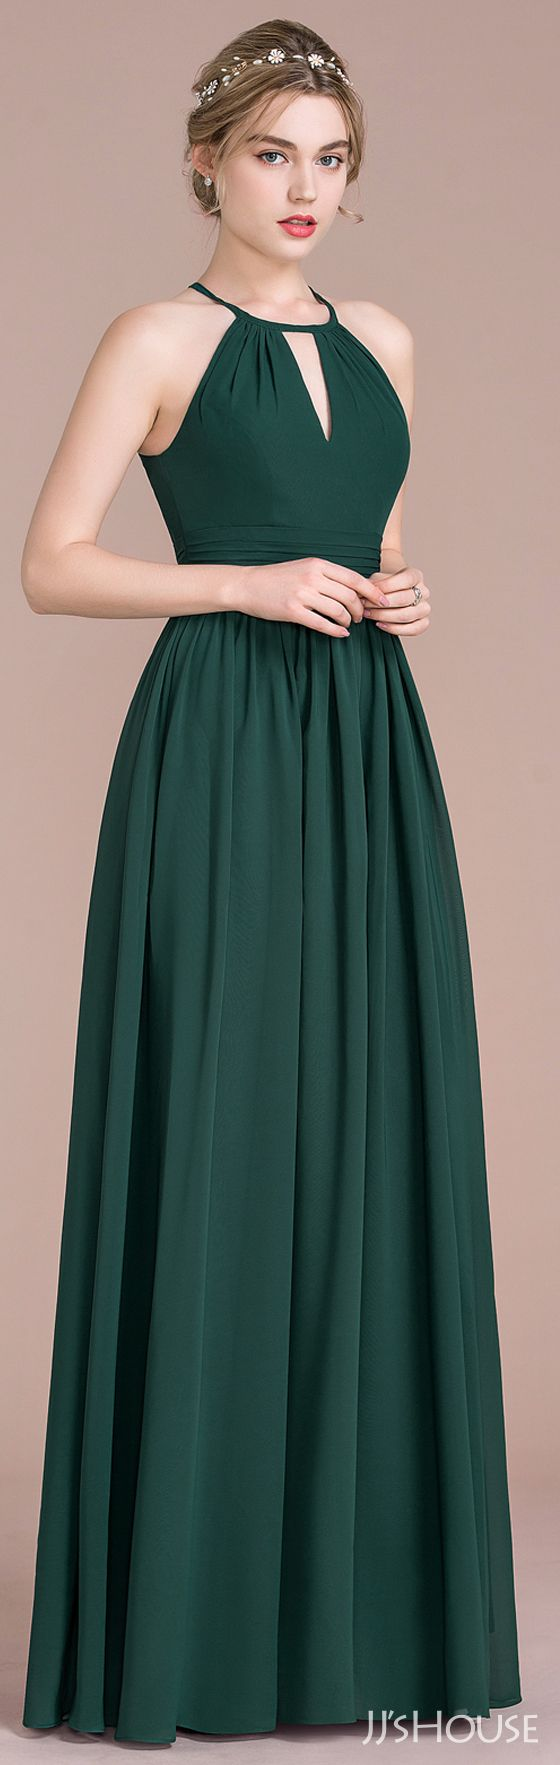 Jjshouse bridesmaid jjshouse bridesmaid dresses pinterest the last person thought this would be a good bridesmaid dress i think it would make an equally good evening gown with out the wedding attached ombrellifo Images